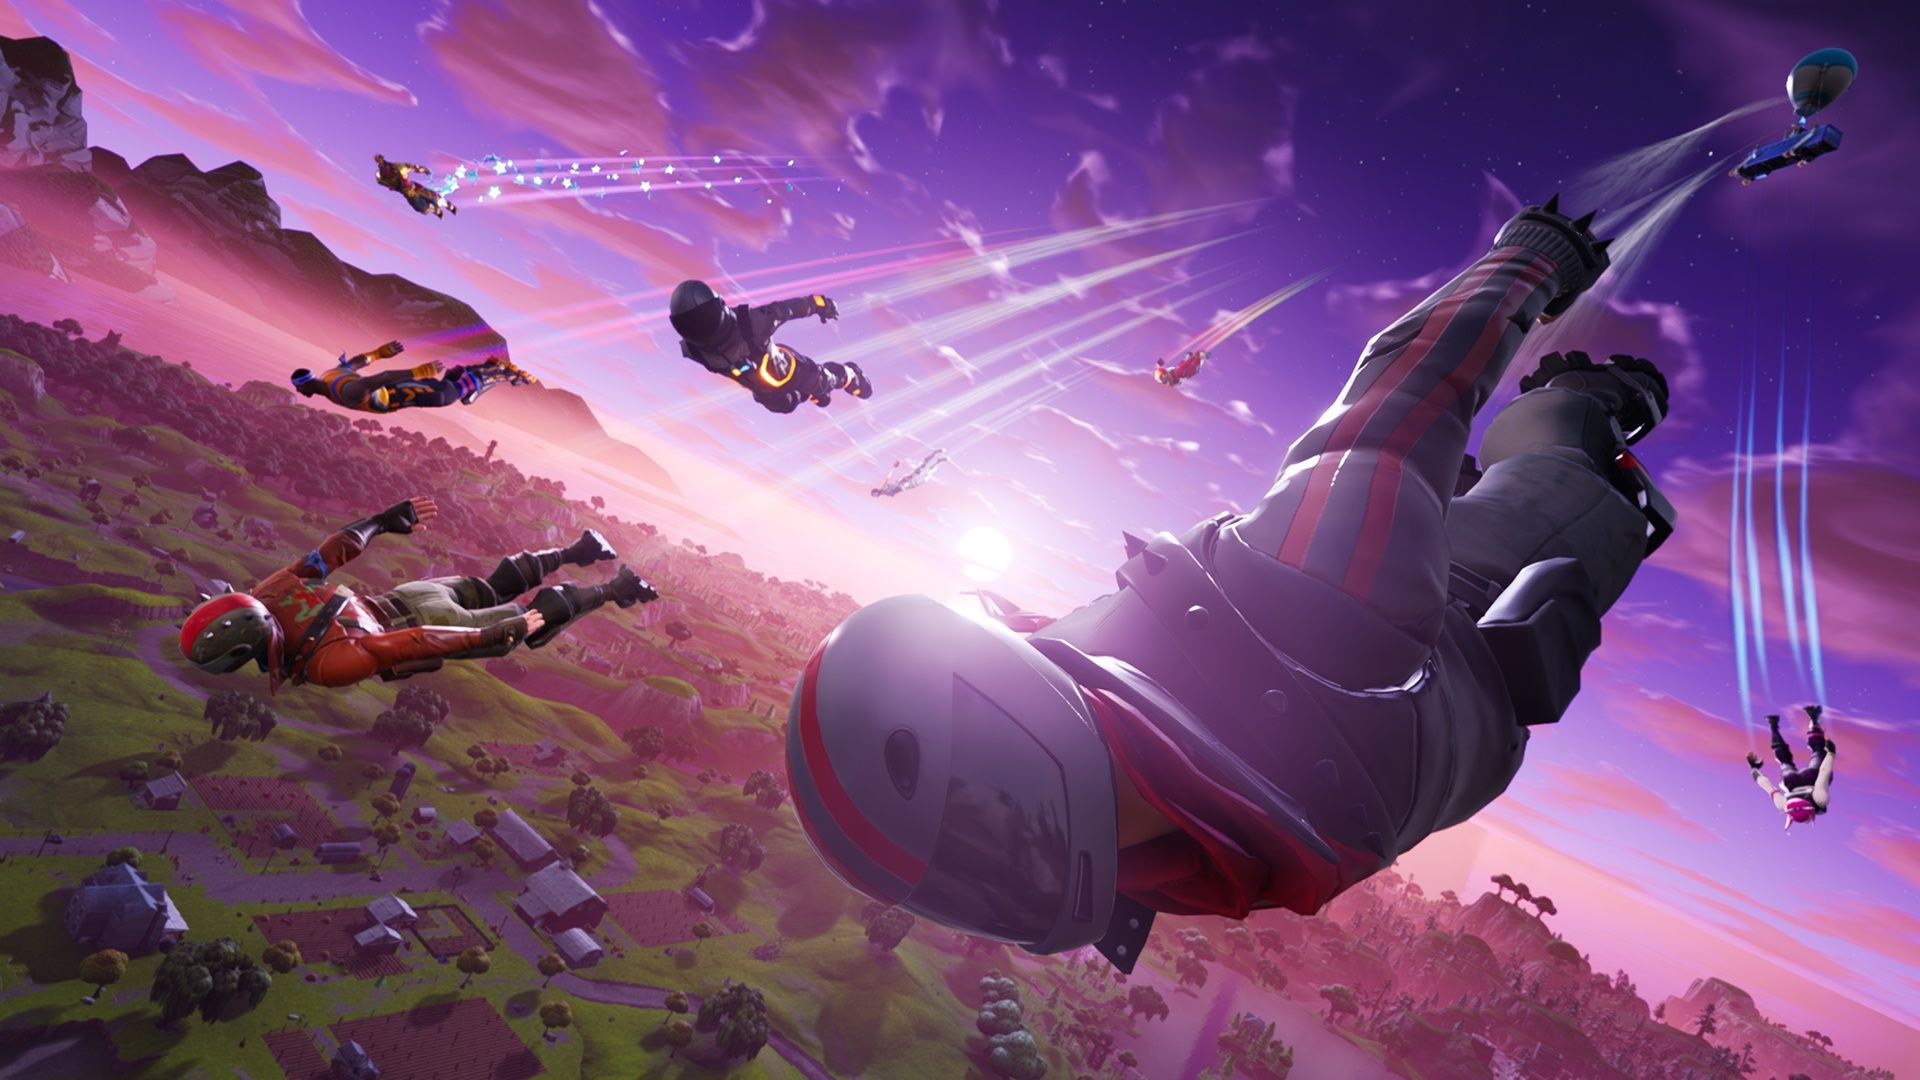 How to merge Fortnite accounts on PS4, Xbox One, and